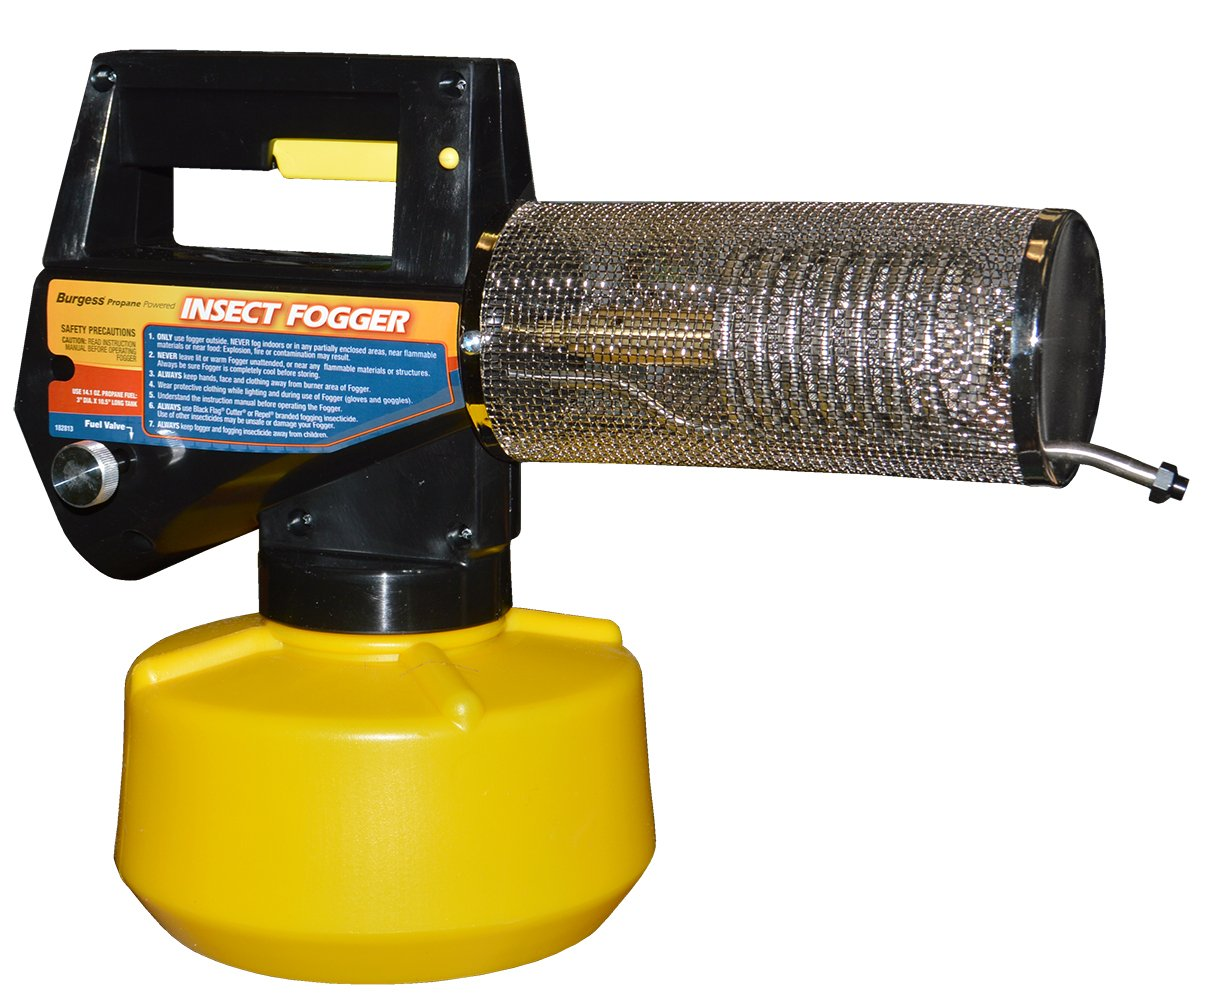 Burgess 1443 Propane Insect Fogger is used by most professionals to eliminate and kill all mosquitos